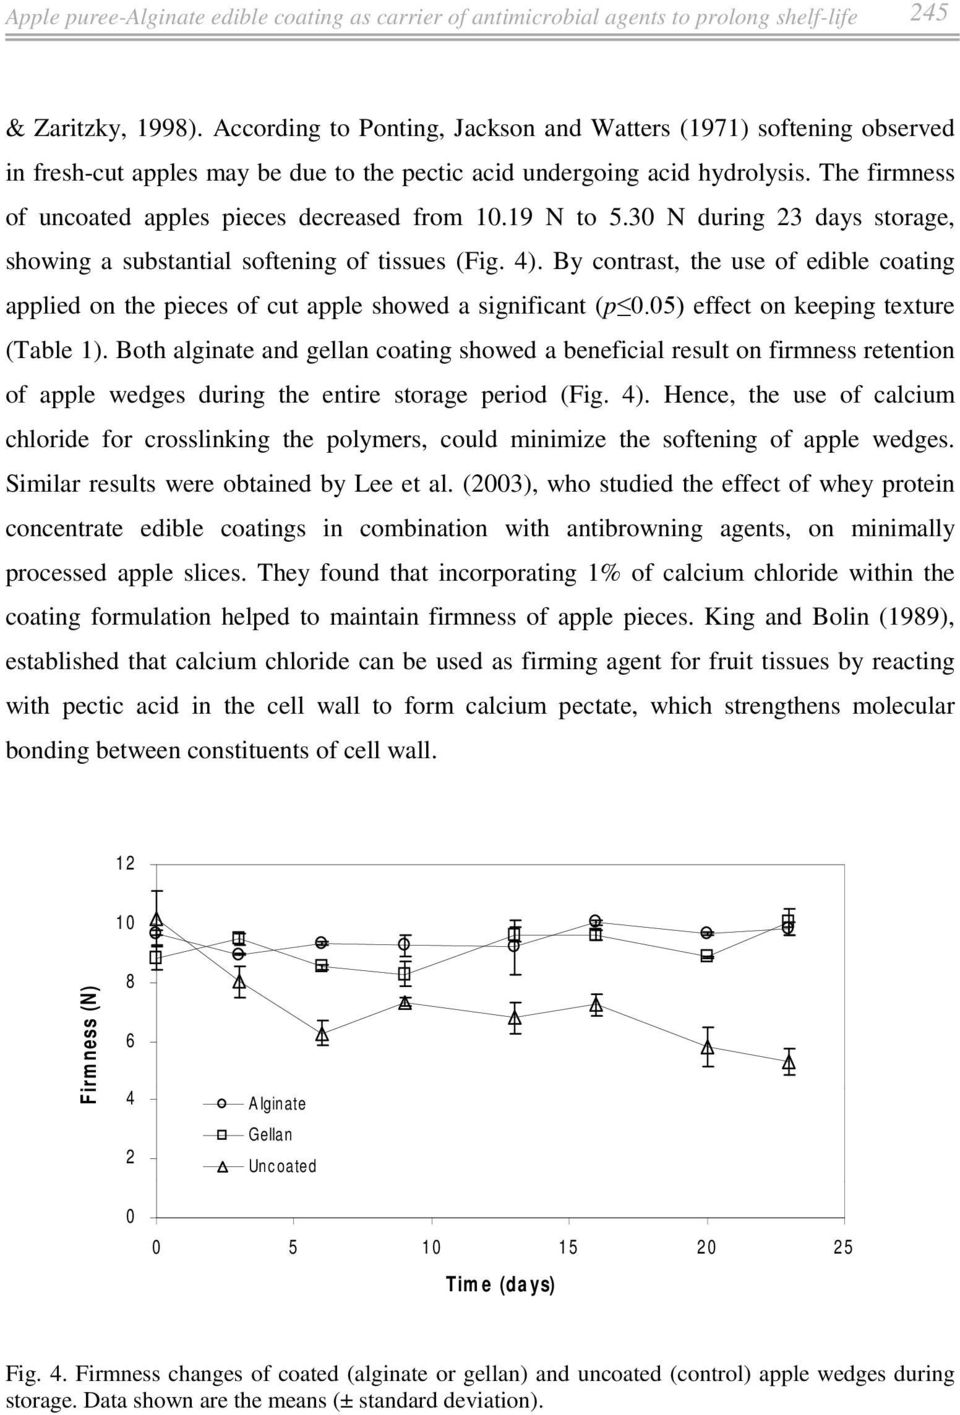 The firmness of uncoated apples pieces decreased from 10.19 N to 5.30 N during 23 days storage, showing a substantial softening of tissues (Fig. 4).